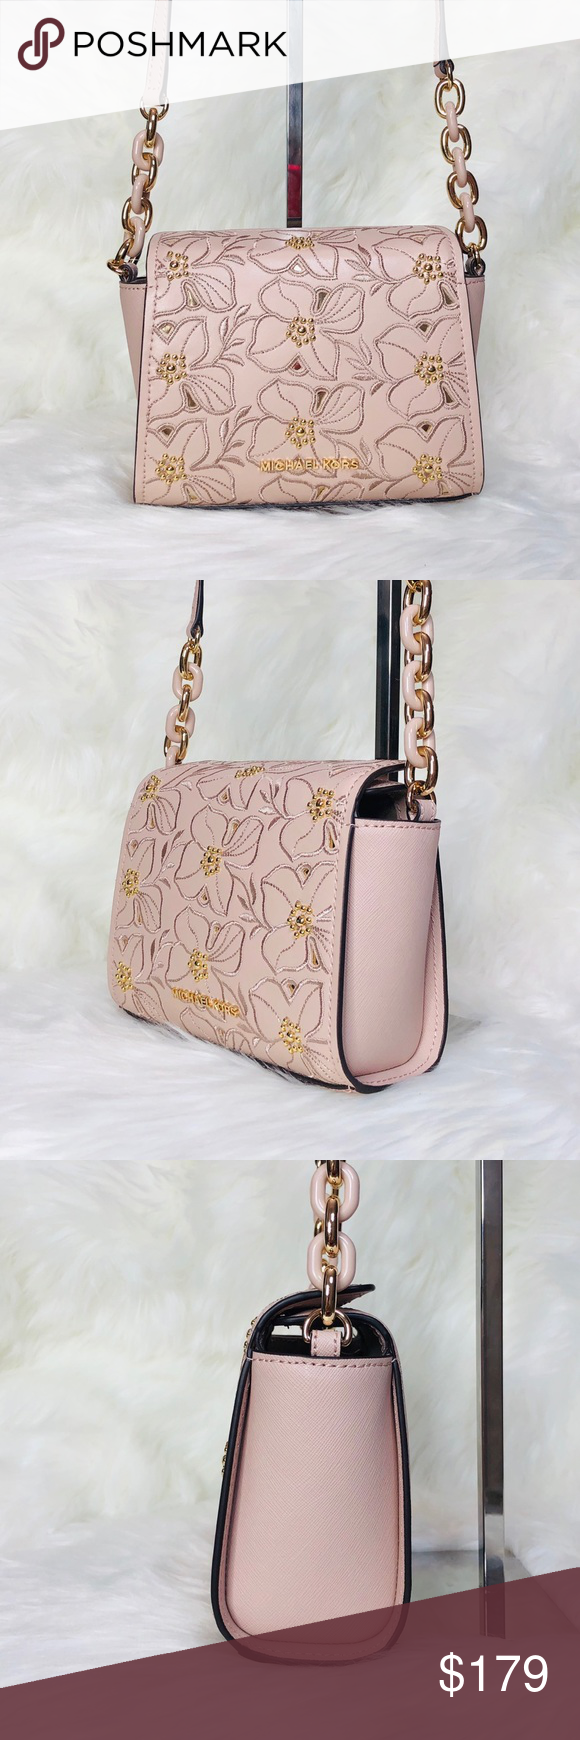 c42242e6ffcc Michael Kors Sofia Small Floral Crossbody Bag Michael Kors Sofia Small  Studded Floral Crossbody Bag Color